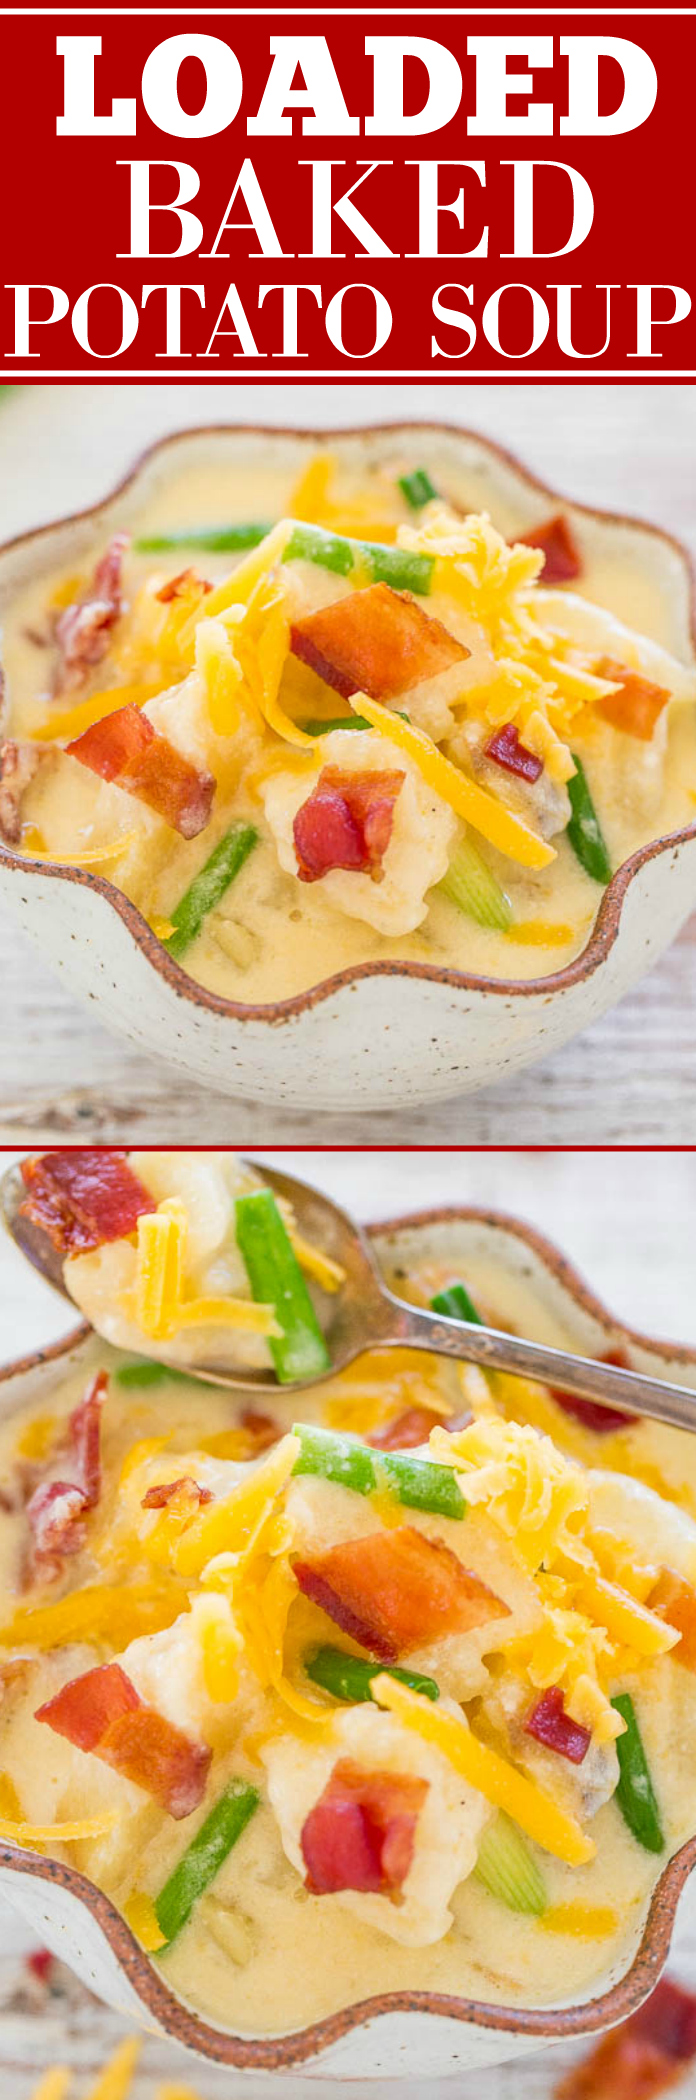 Loaded Baked Potato Soup - LOADED with your favorite baked potato toppings in a comforting bowl of soup!! Green onions, CHEESE, BACON, and more! Easy, creamy, cheesy, and hearty!!